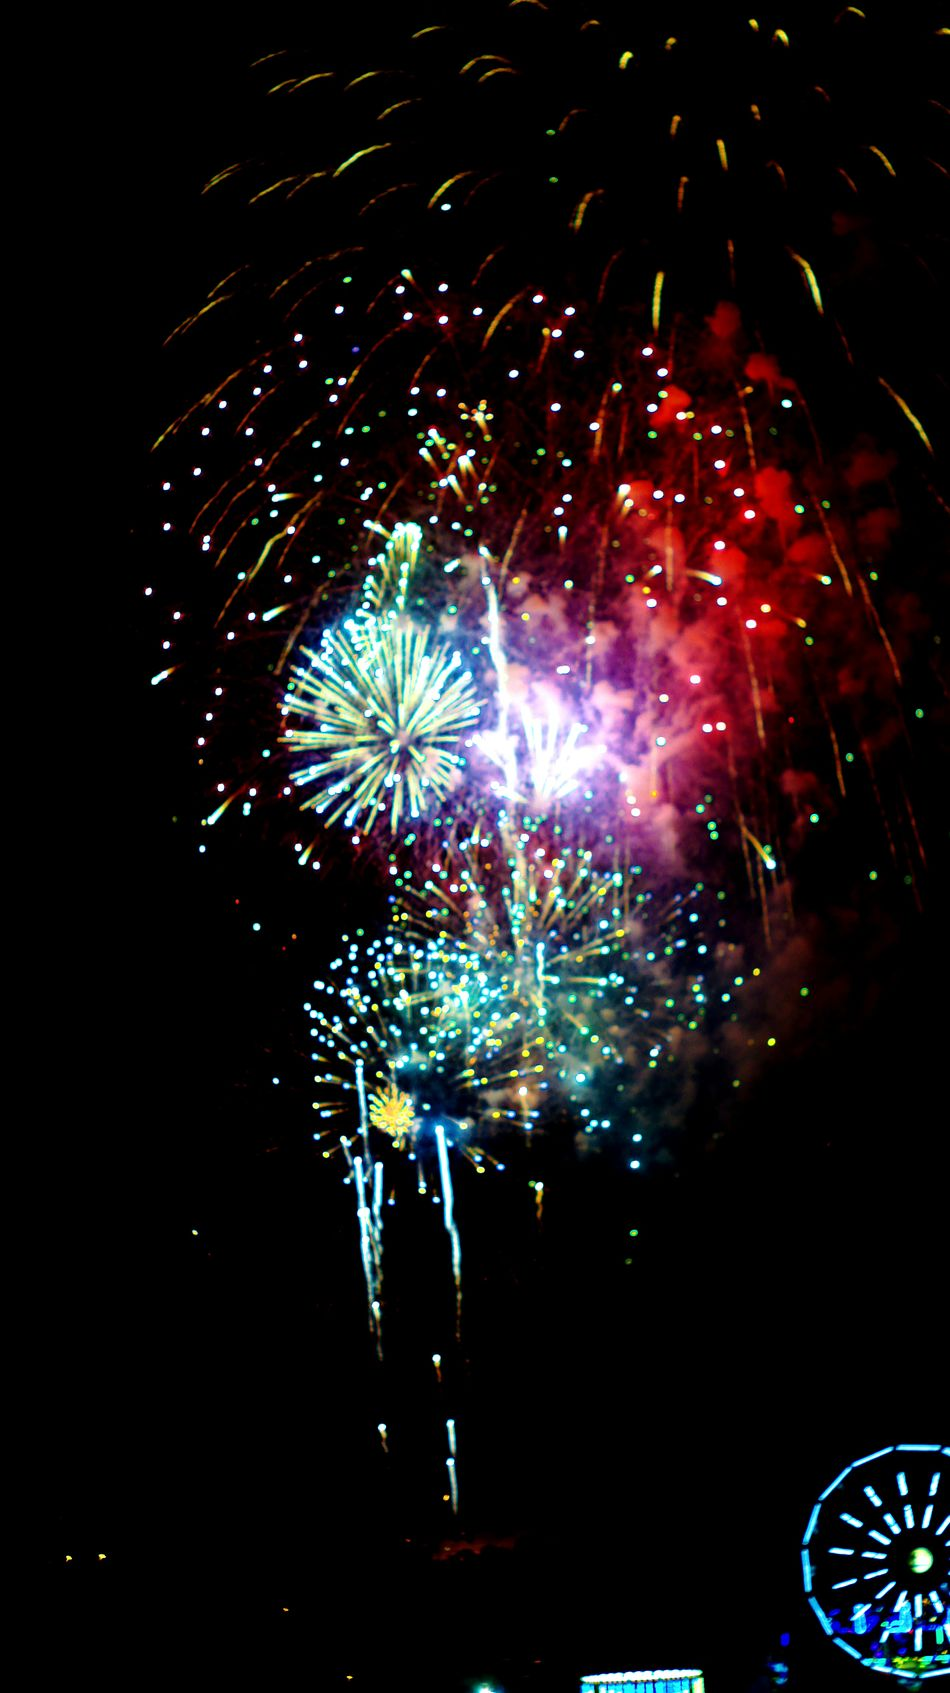 Addisontx KaBoom Addison Fireworks 4th Of July July4th Independence Day Independenceday